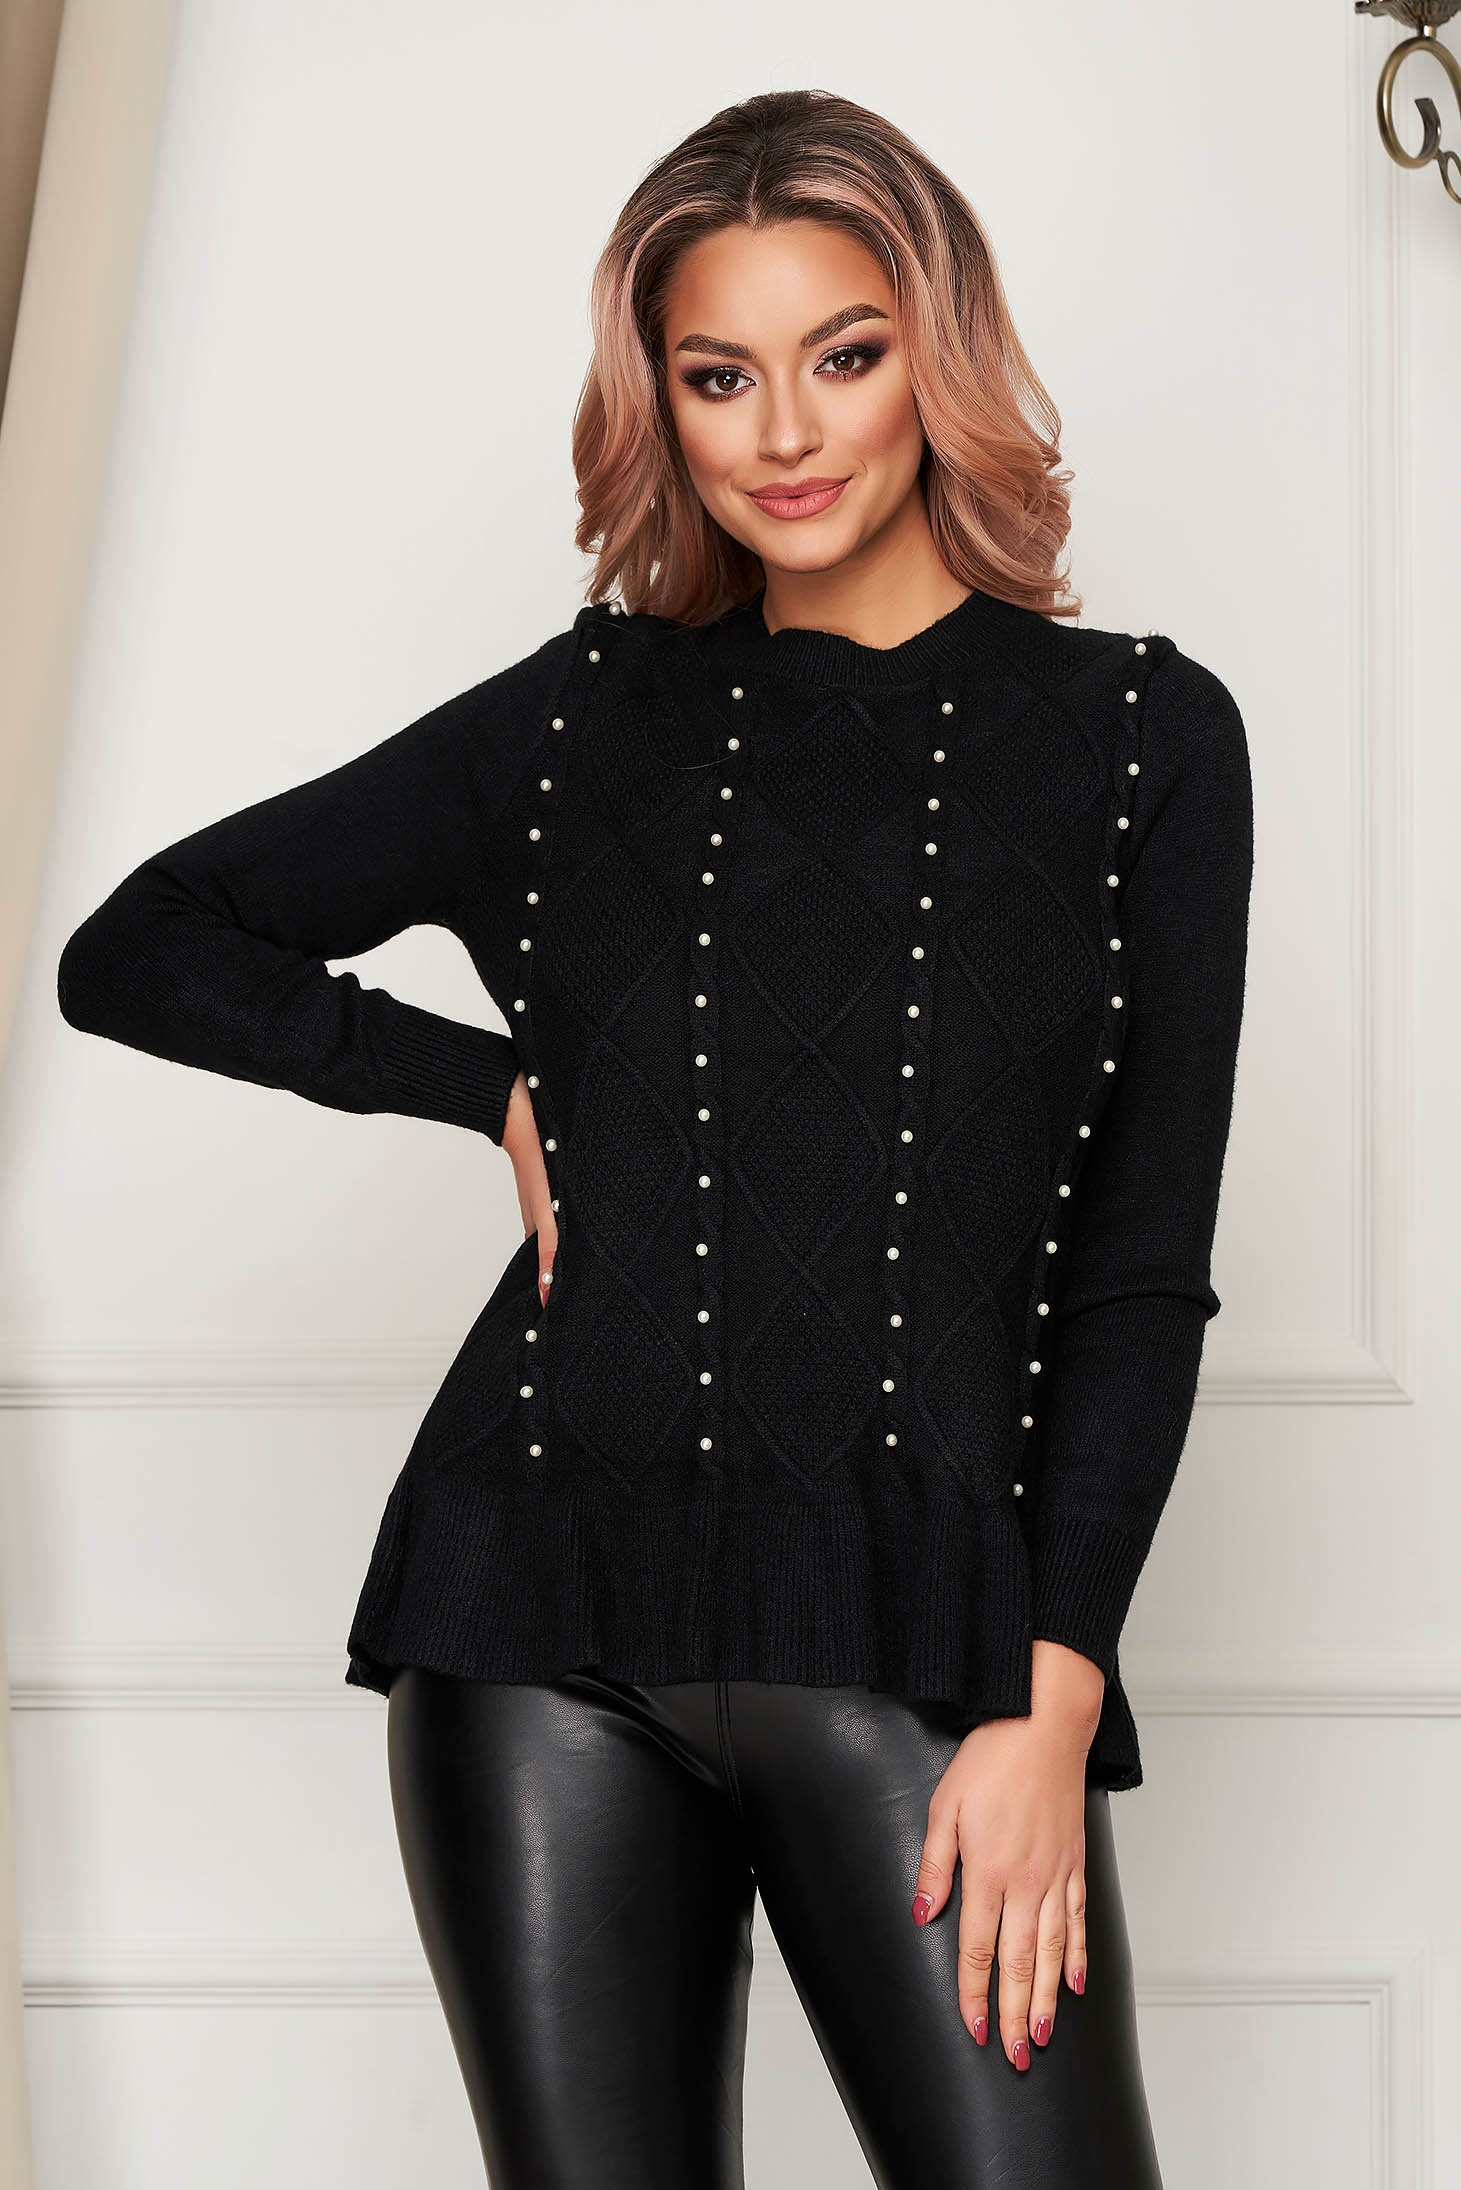 Black sweater casual flared knitted with pearls with ruffle details